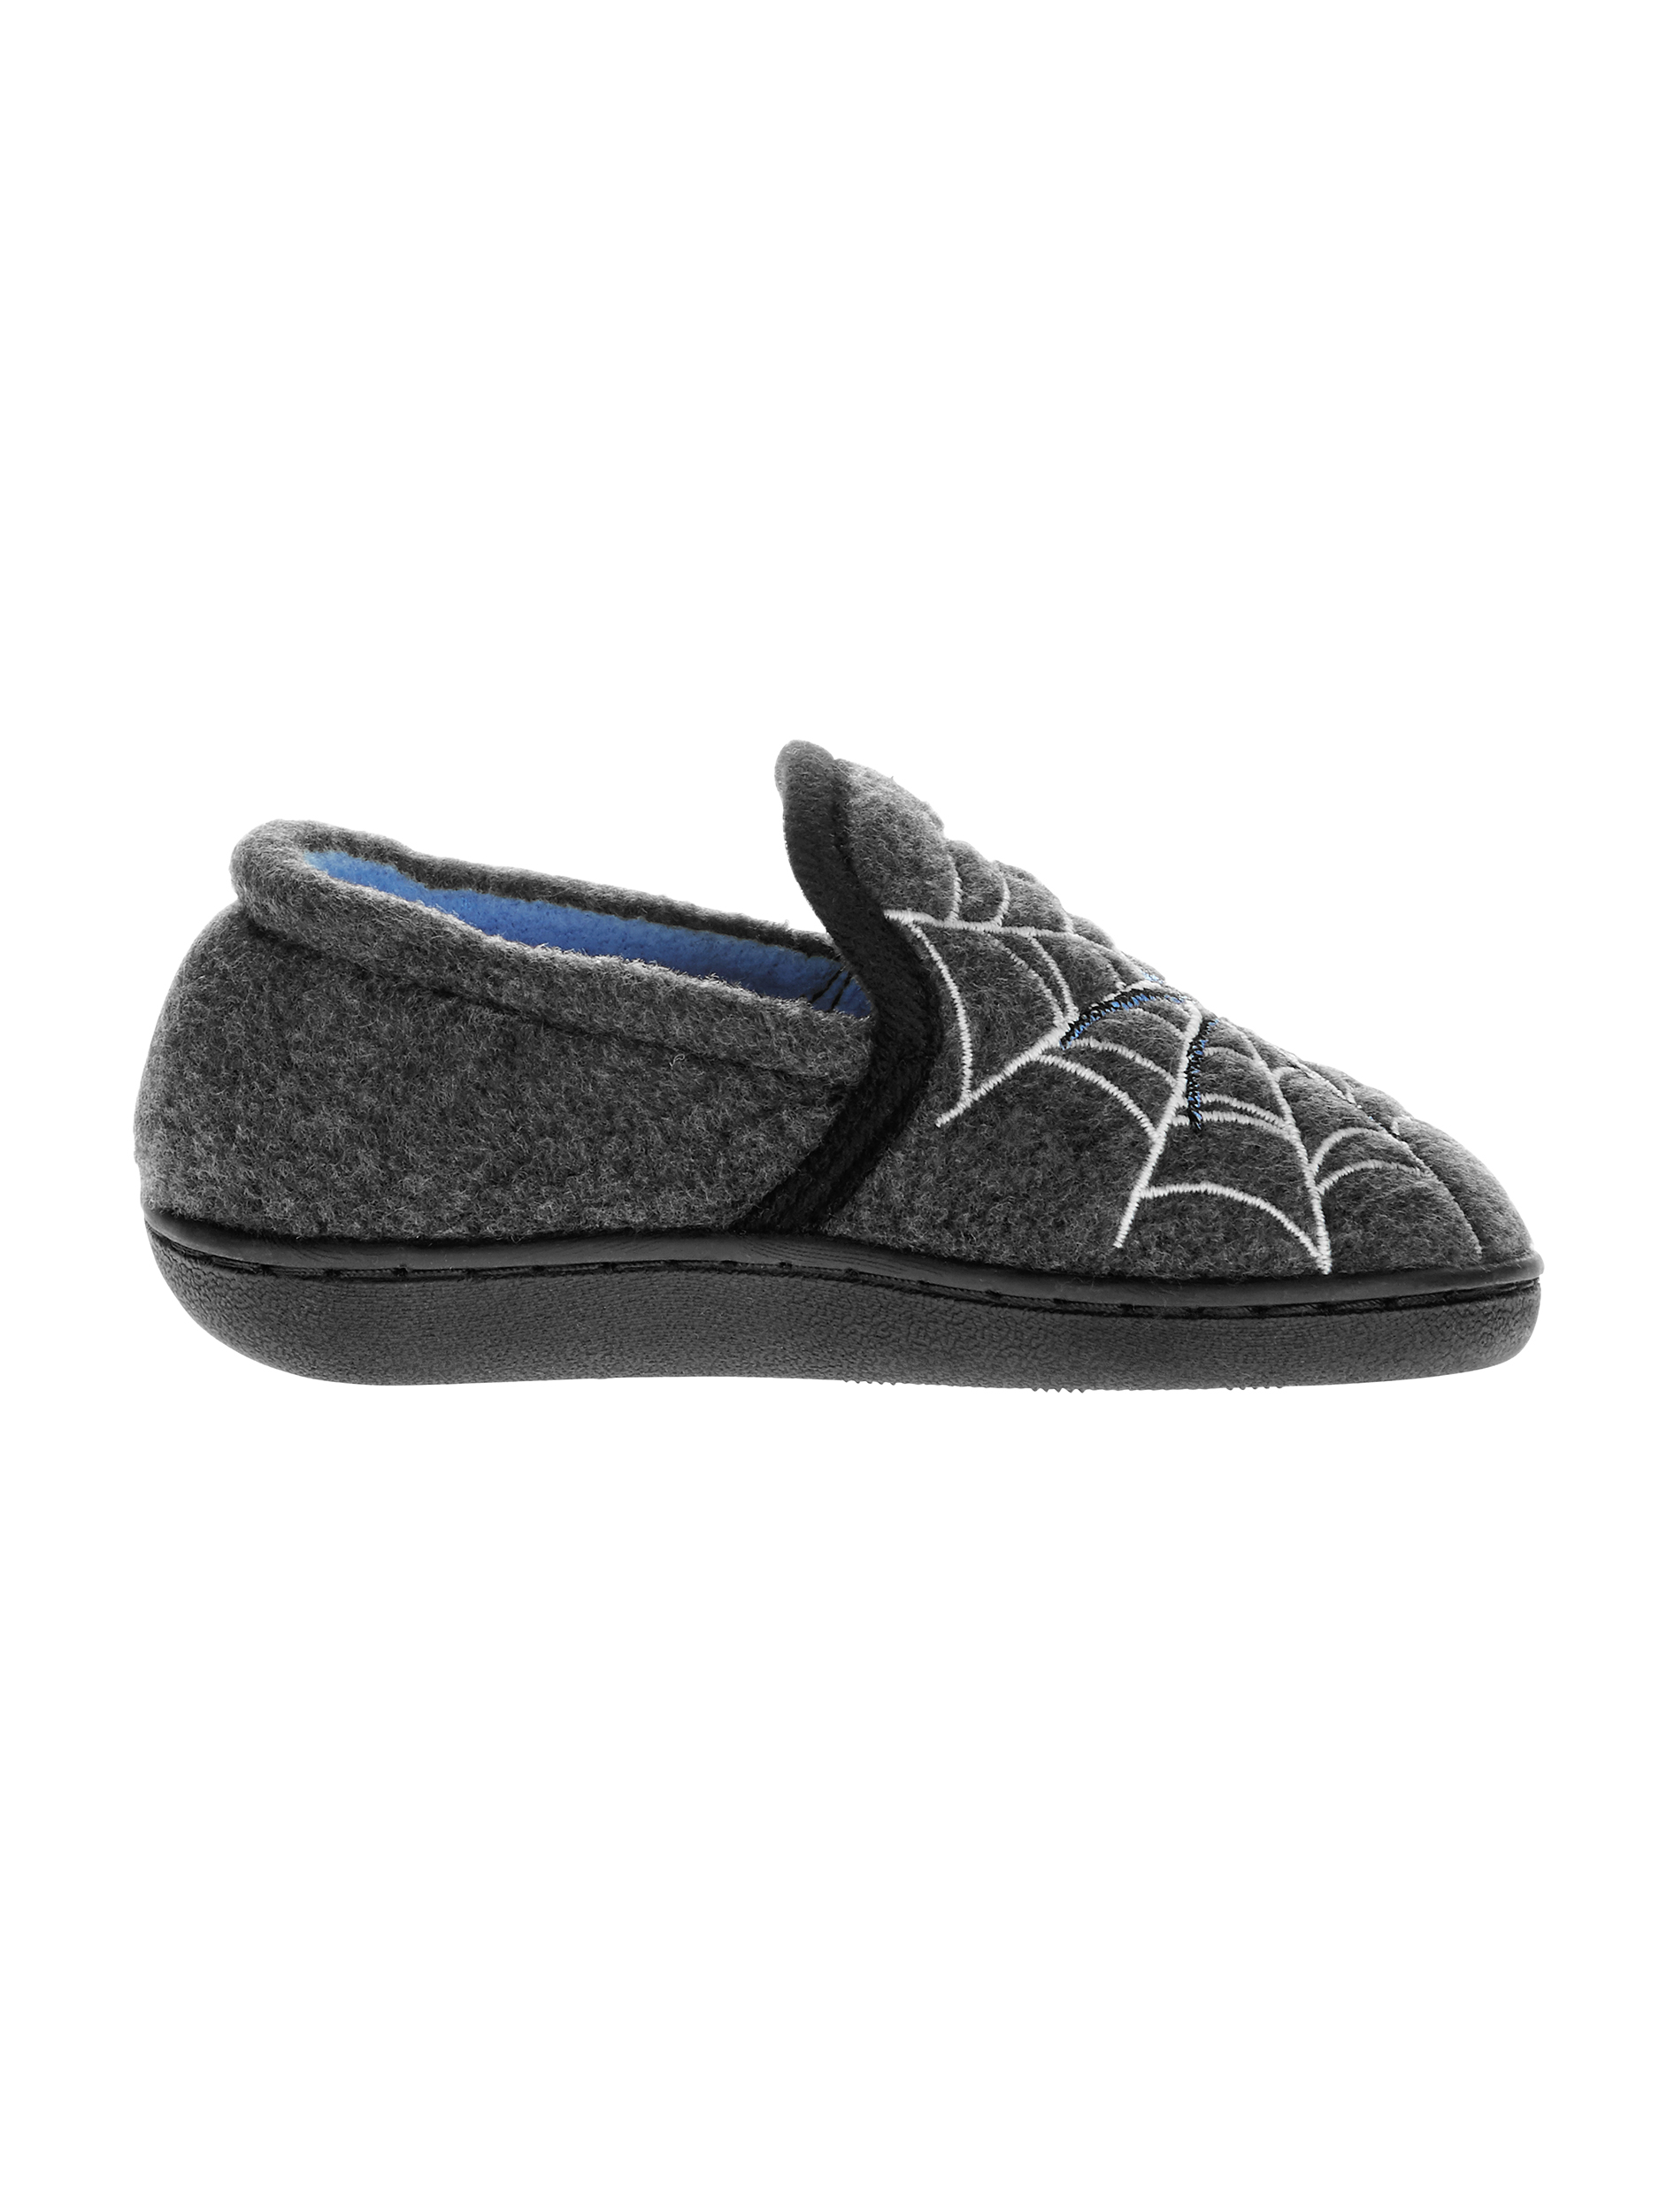 Toddler Boys' Aline Slipper